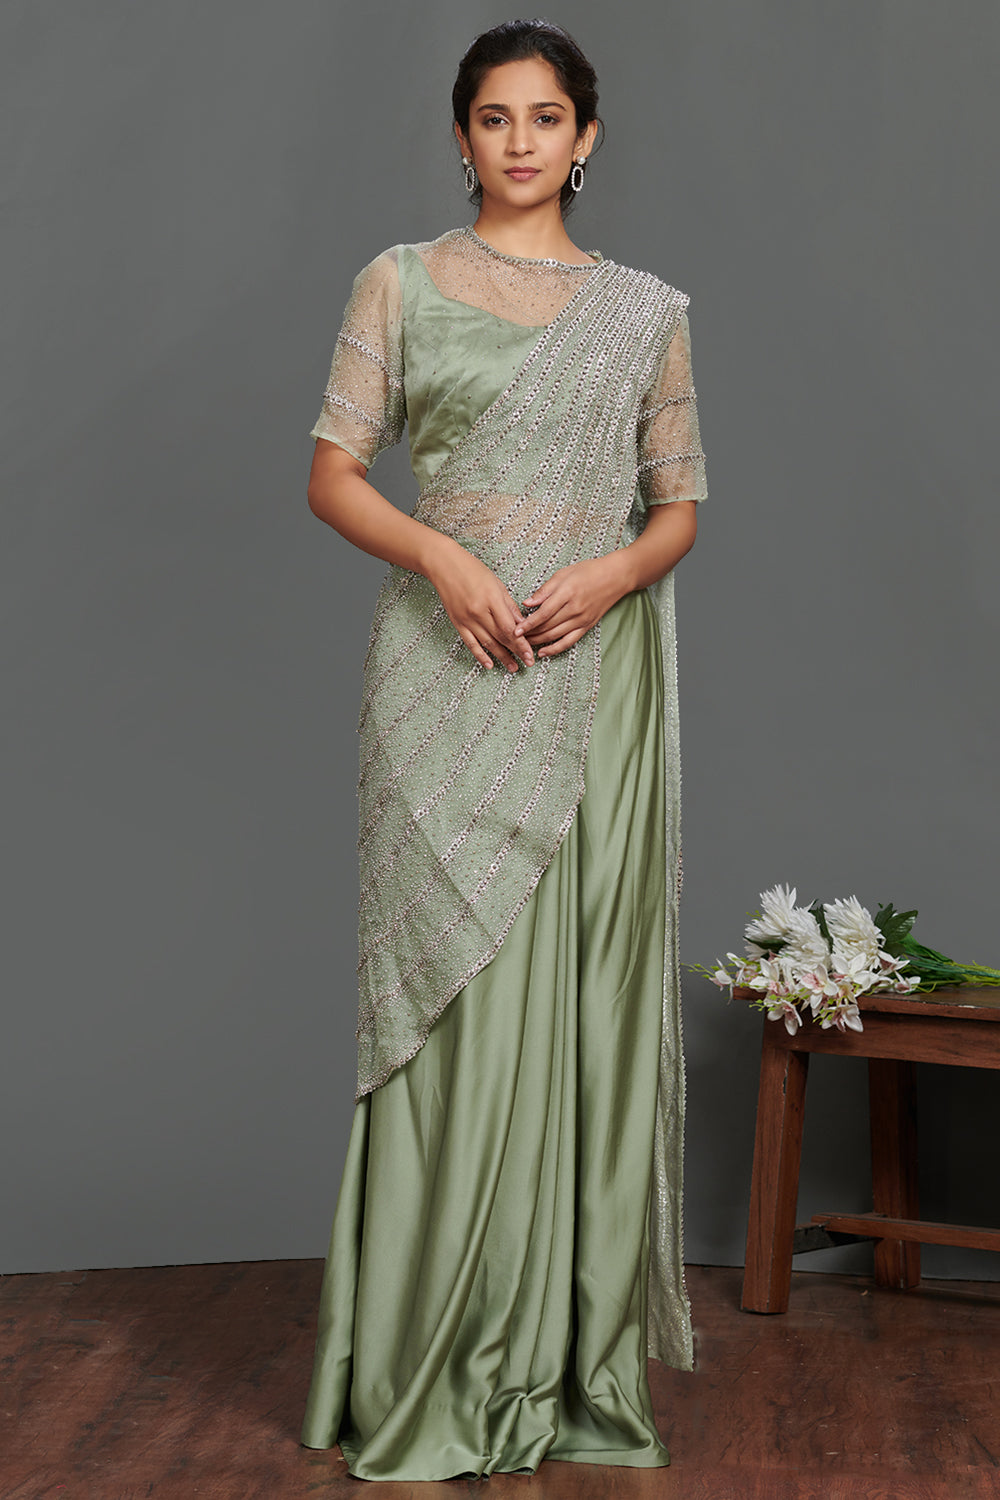 Shop beautiful green embellished lehenga saree set online in USA. Make a fashion statement on festive occasions and weddings with palazzo suits, sharara suits, partywear dresses, salwar suits from Pure Elegance Indian fashion store in USA.-full view